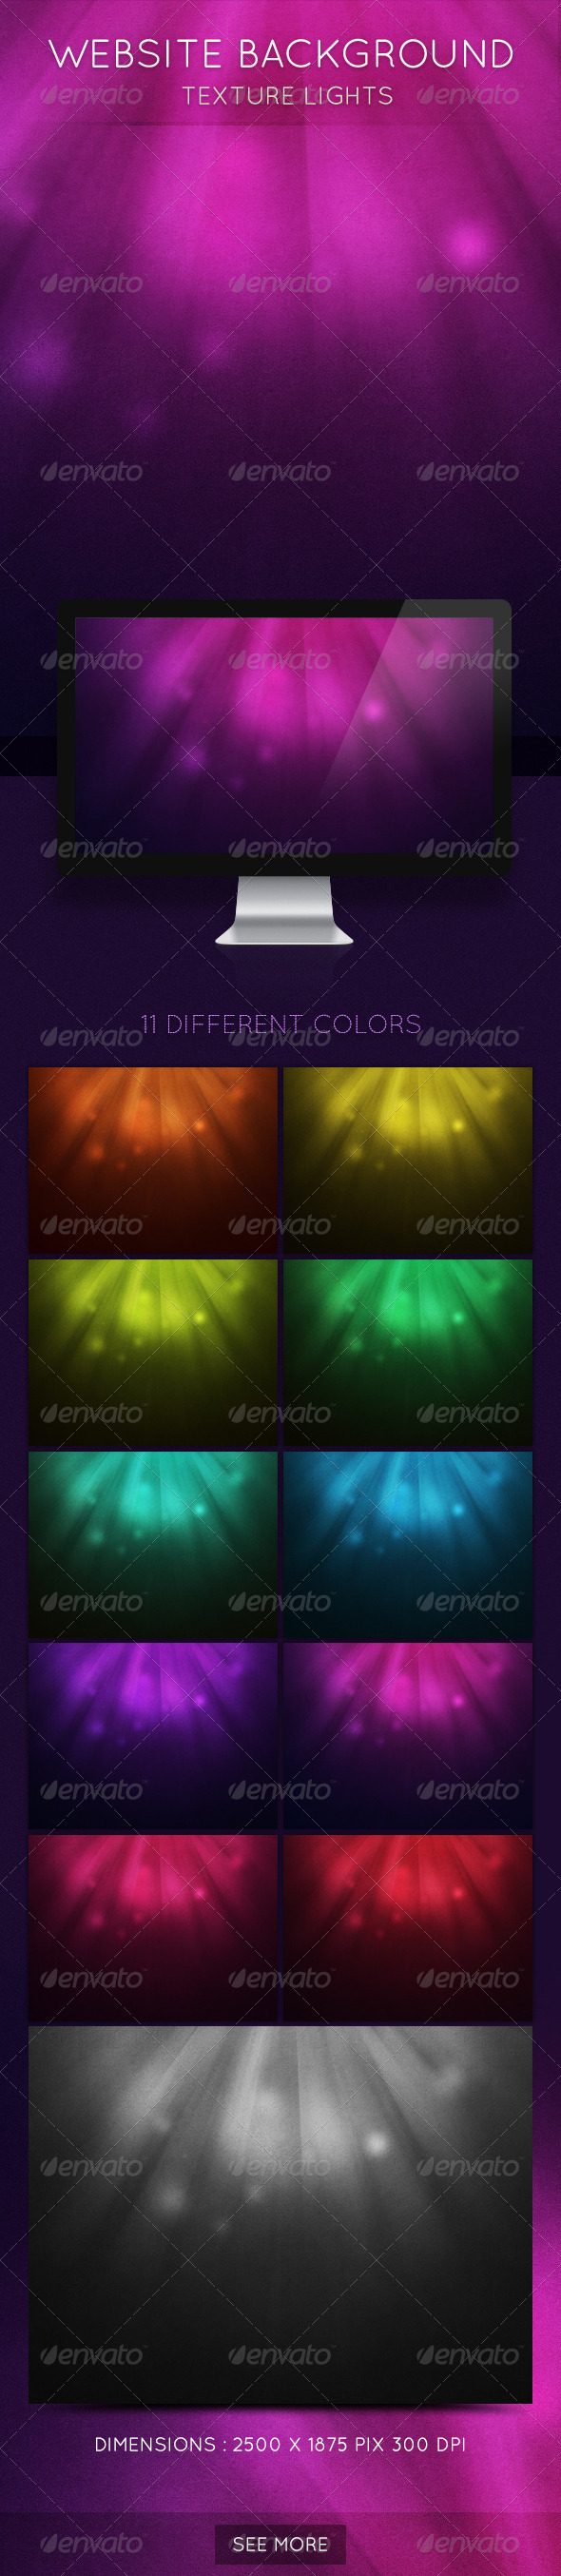 Website Background Texture Lights - Abstract Backgrounds